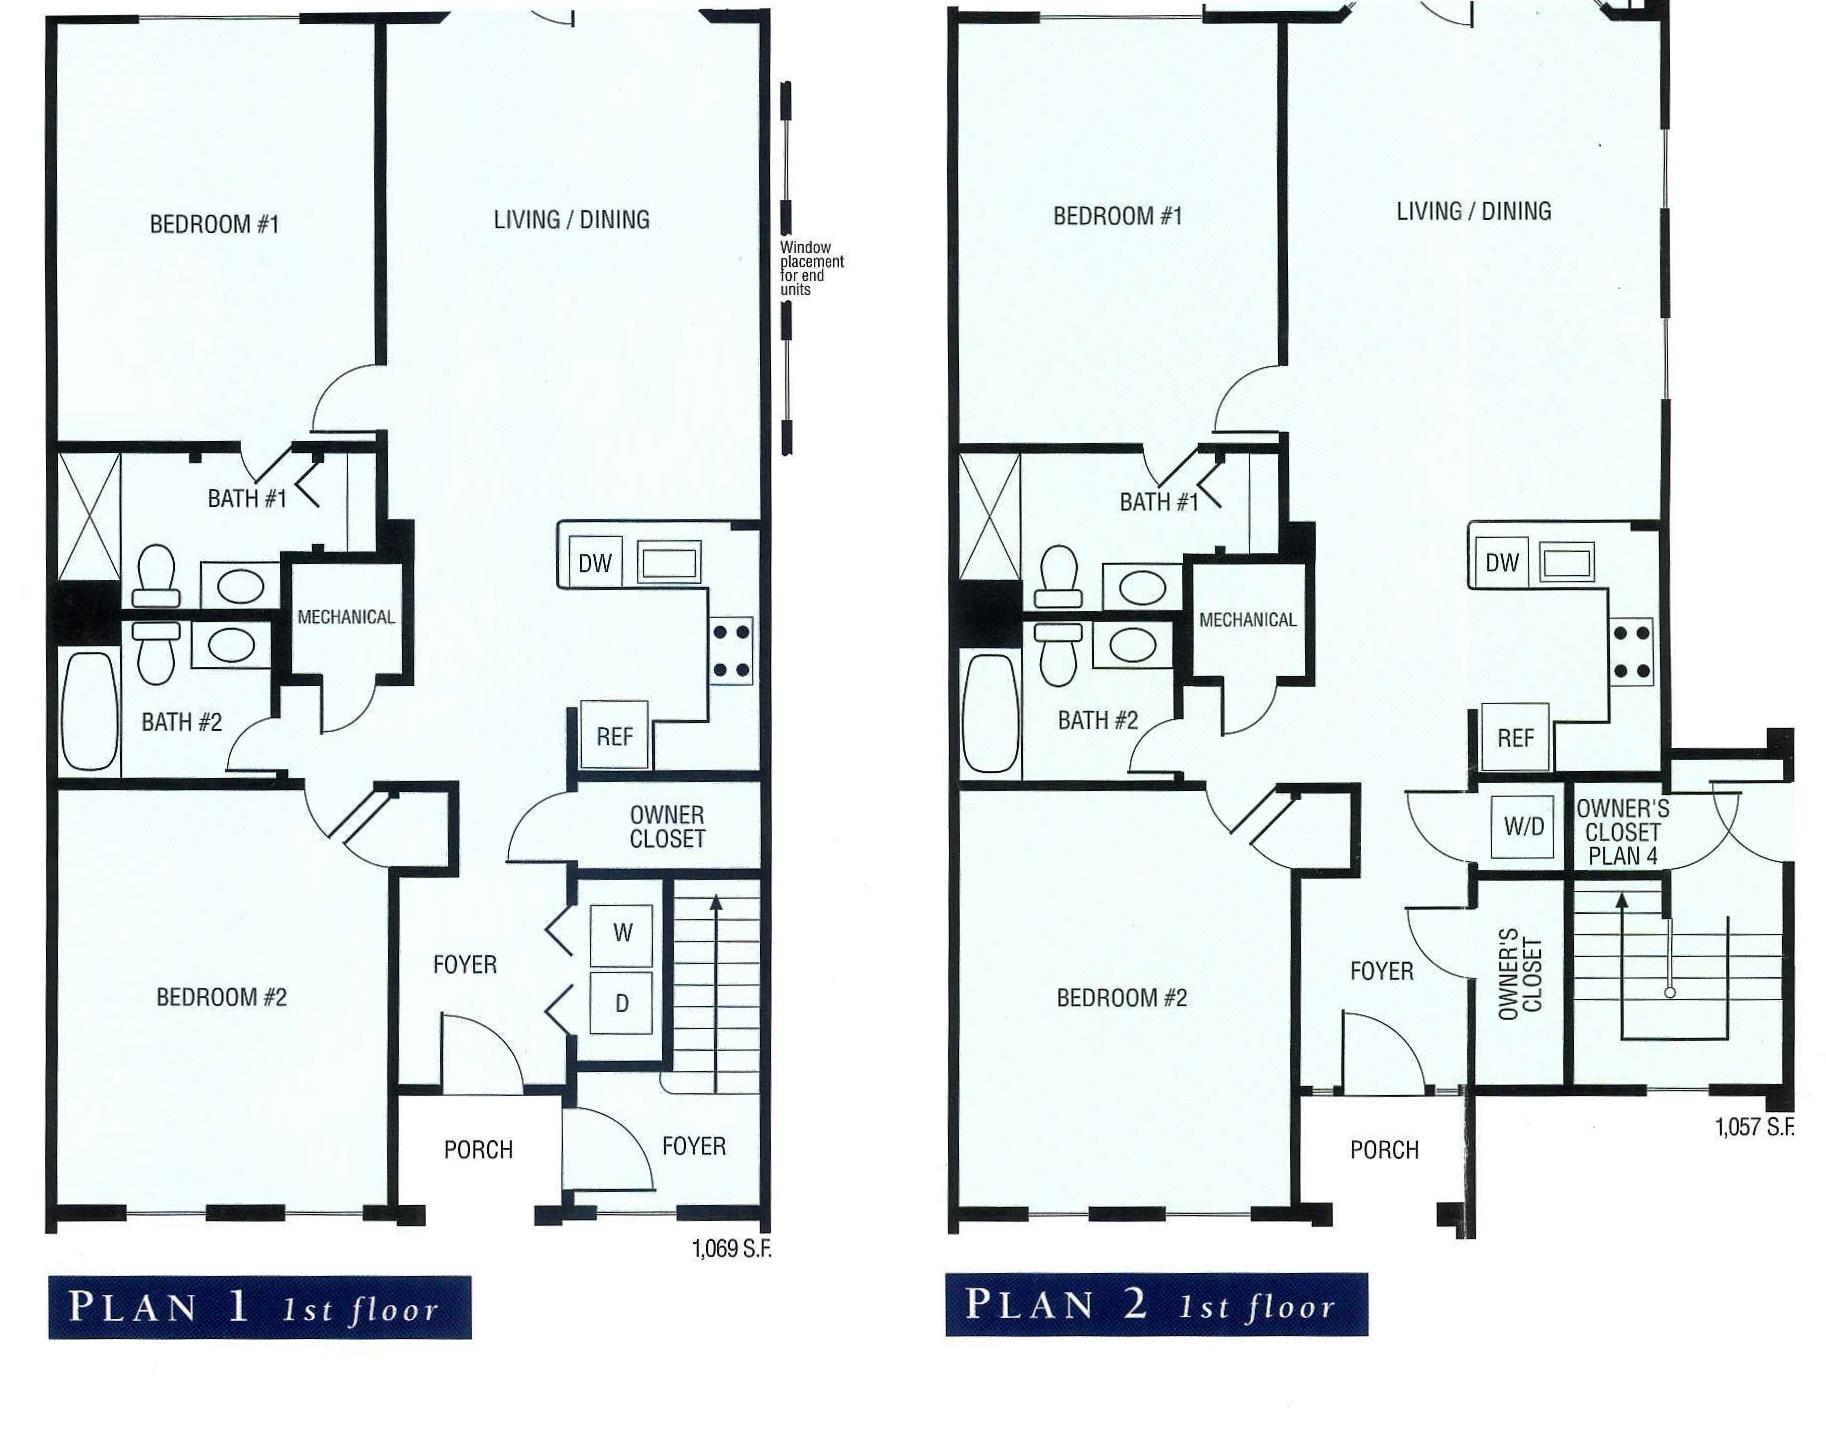 floor plans for turnberry park